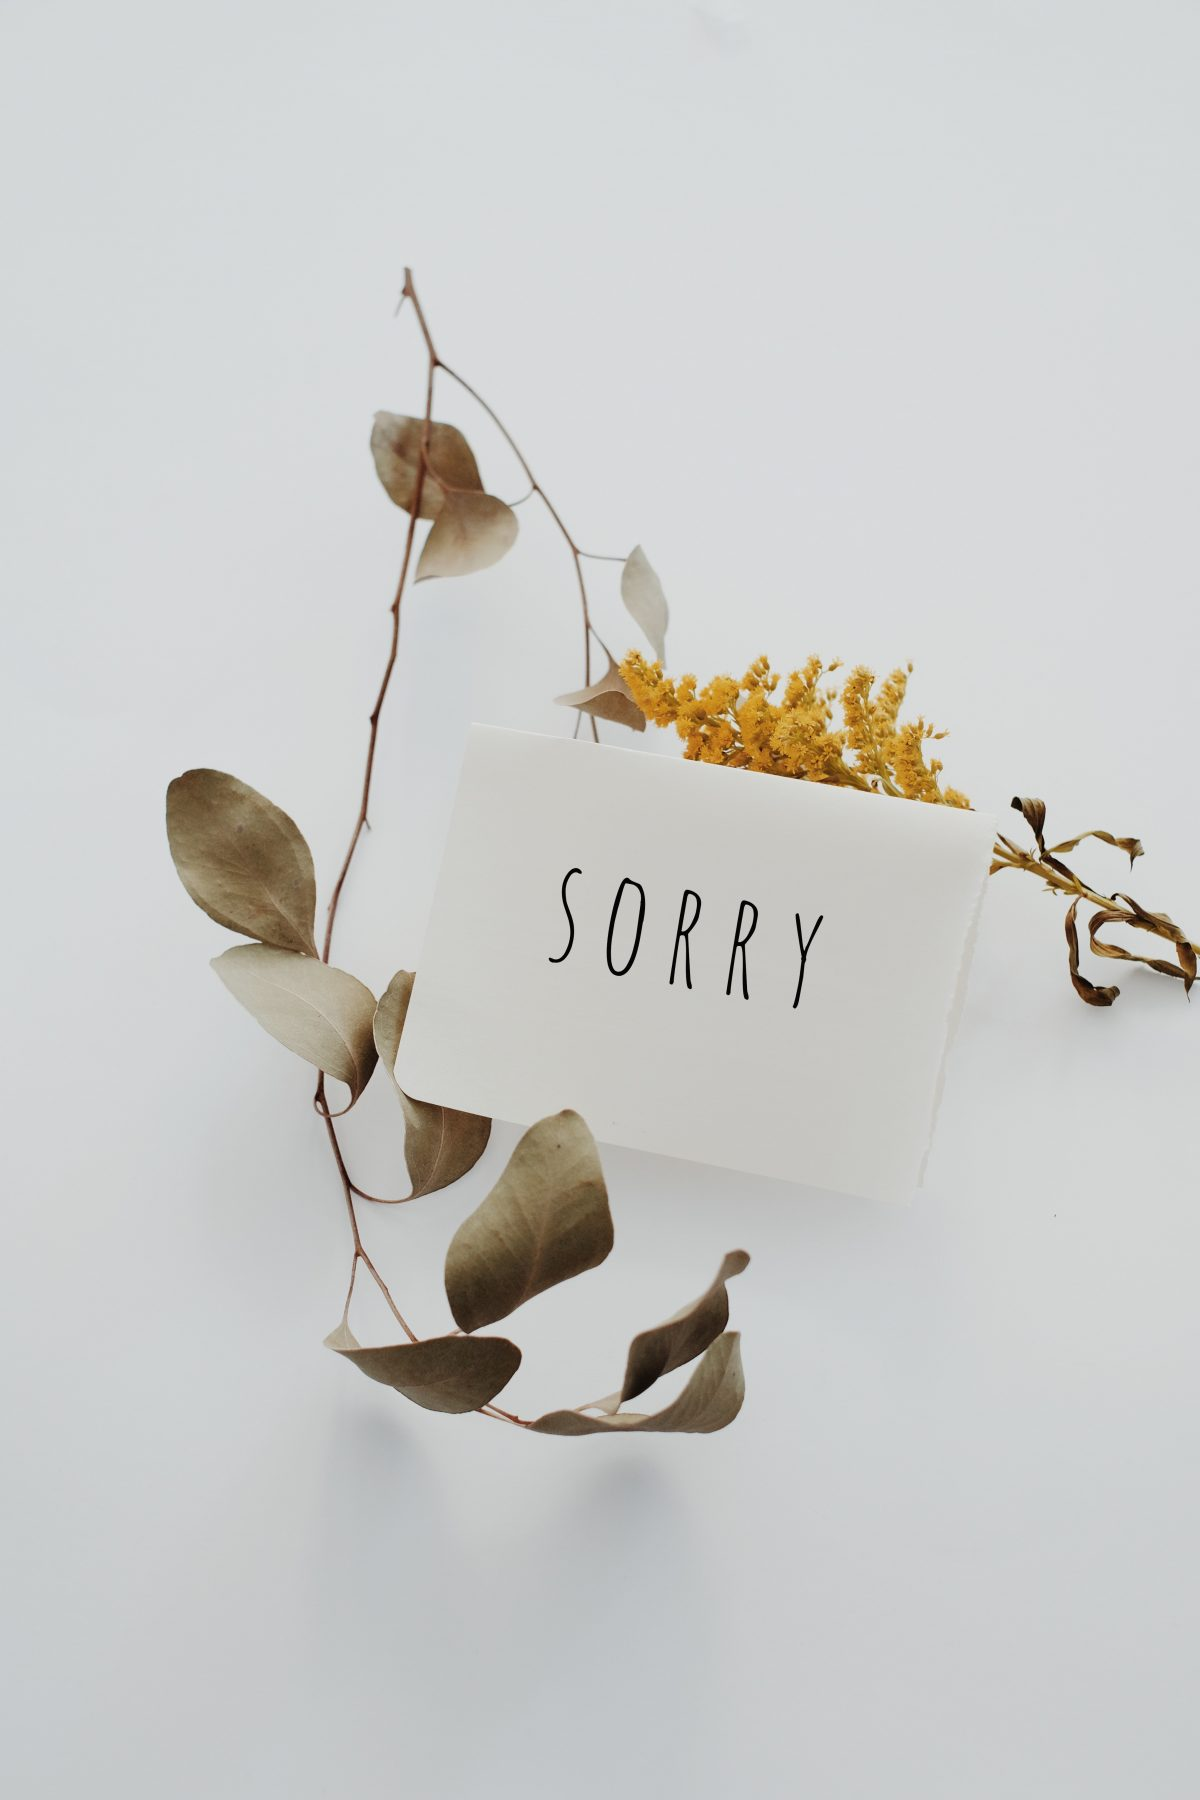 How (and Why) Your Business Should Apologize For Its Mistakes